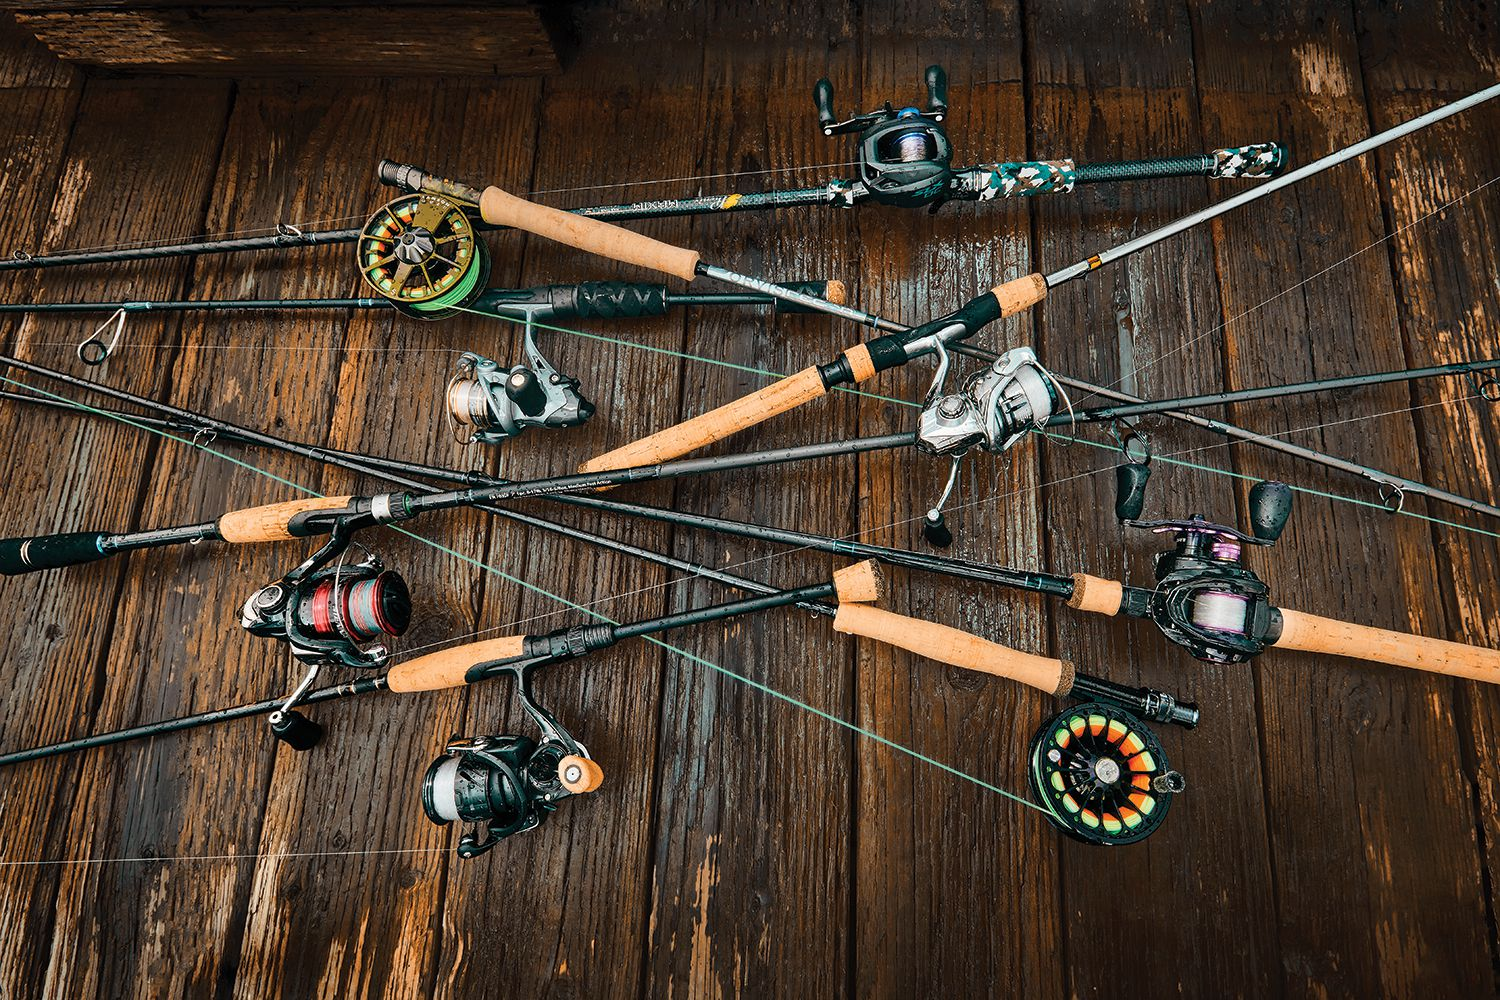 Tackle Test The Best New Fishing Rods And Reels For 2020 Ranked And Rated Outdoor Life